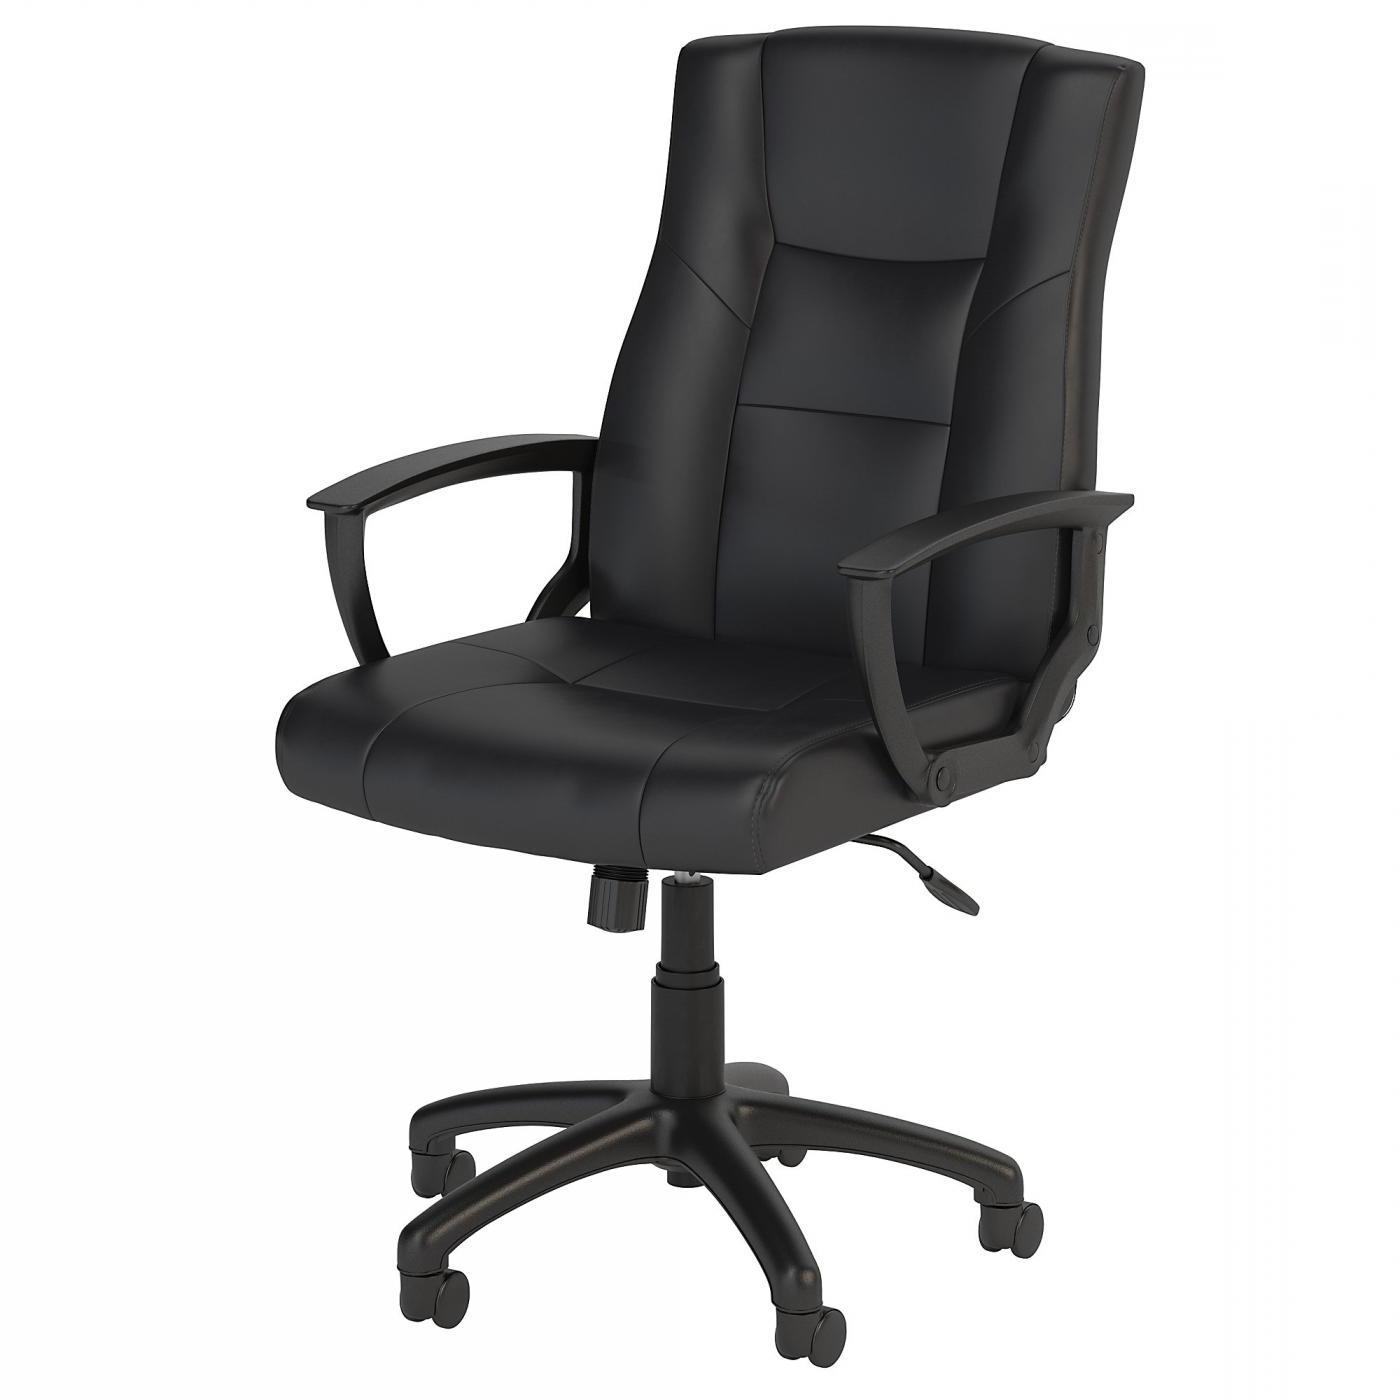 BUSH BUSINESS FURNITURE ACCORD EXECUTIVE OFFICE CHAIR. FREE SHIPPING.  SALE DEDUCT 10% MORE ENTER '10percent' IN COUPON CODE BOX WHILE CHECKING OUT.